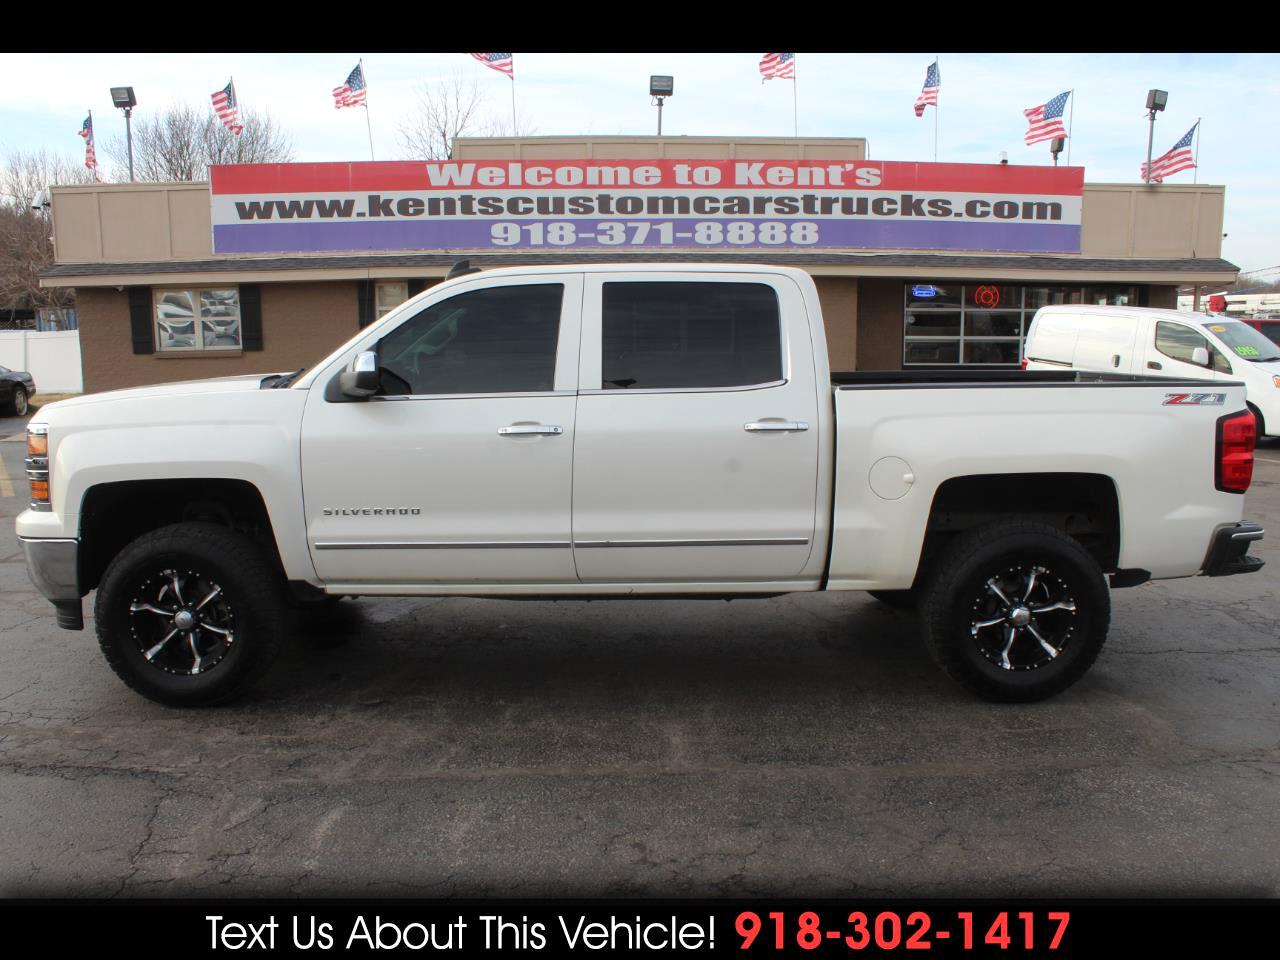 2015 Chevrolet Silverado 1500 LTZ Z71 Crew Cab 5.8 ft. Short Bed